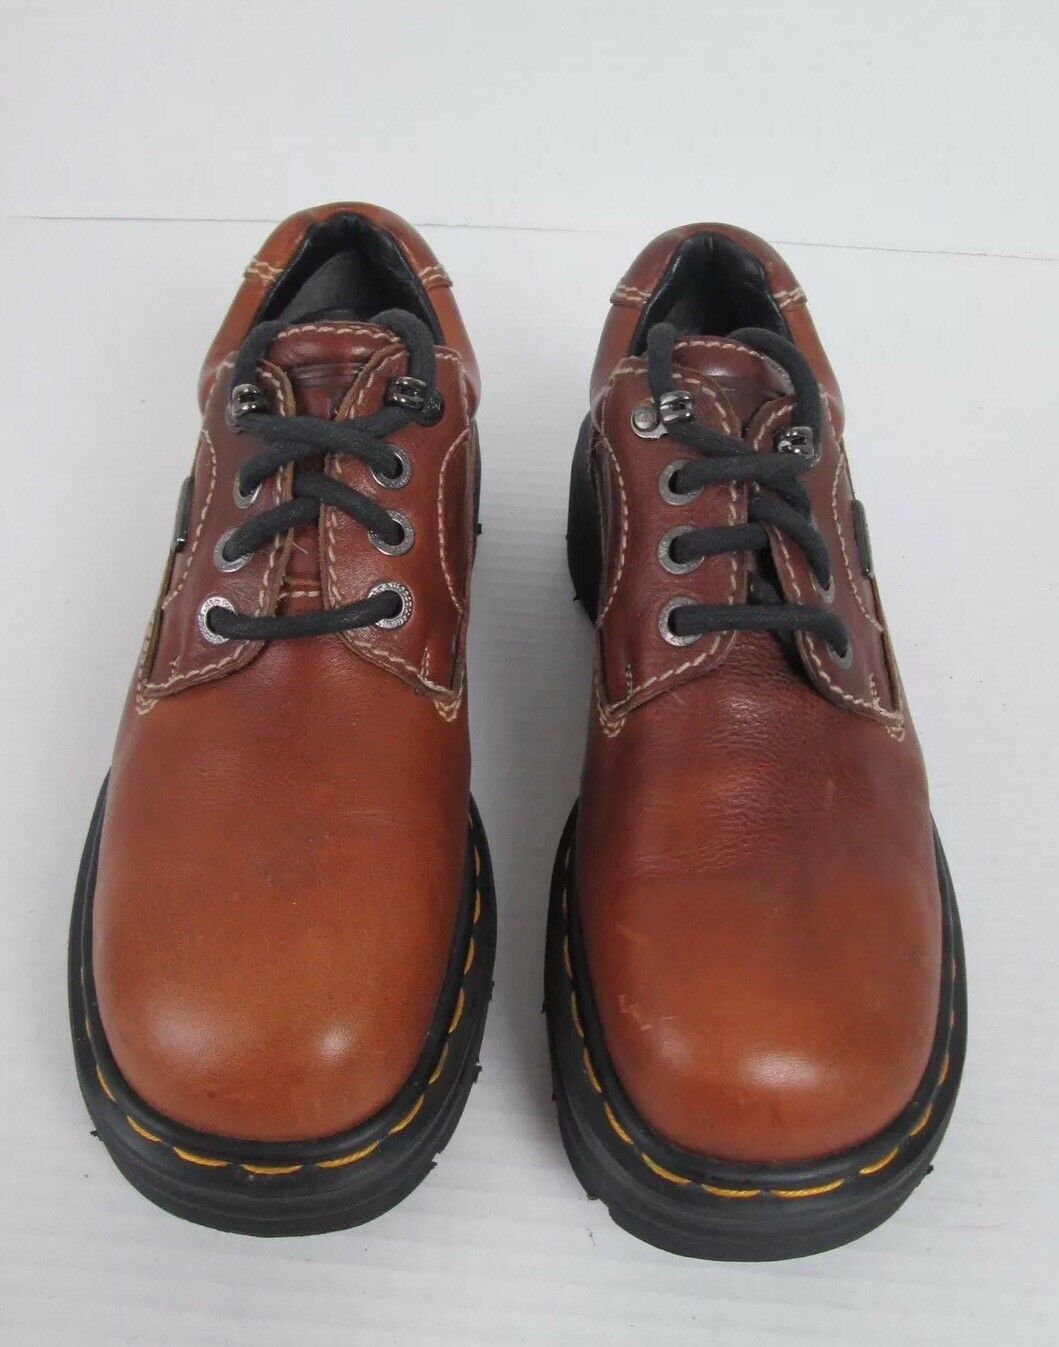 Dr Martens 9272 Mens Size US 6 Air Cushioned Sole England Brown